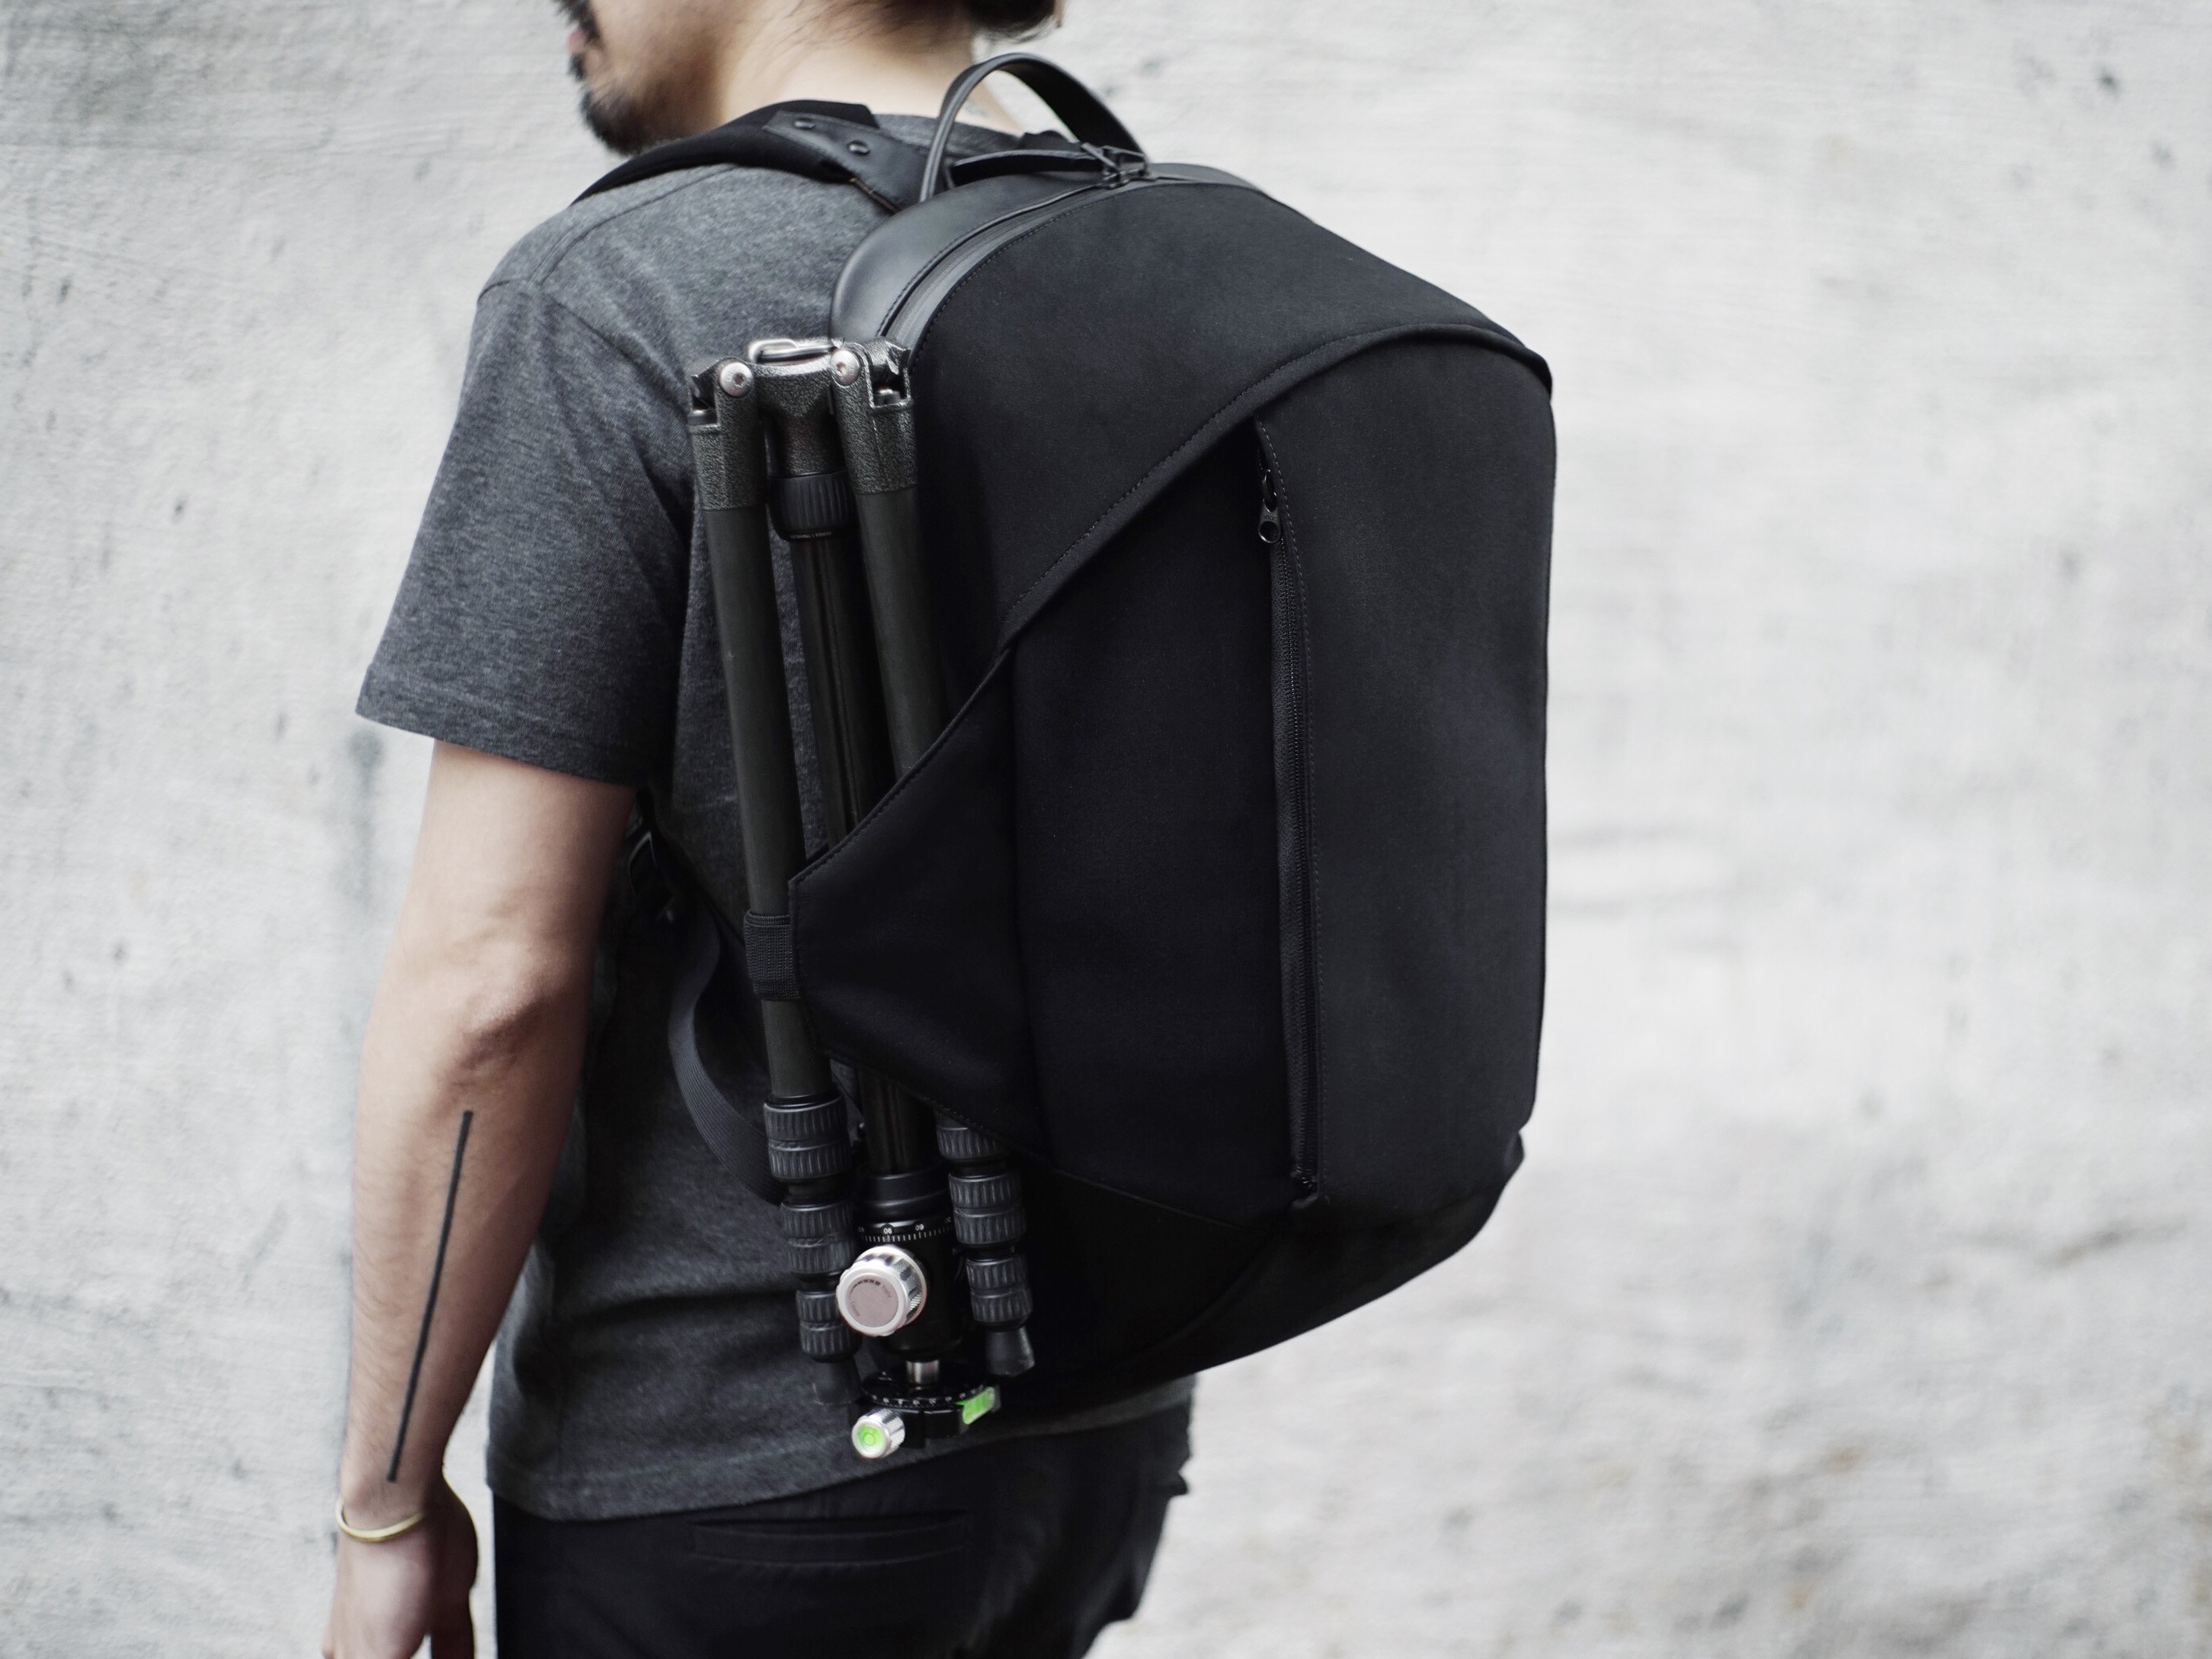 Design company ITR Studio has launched a Kickstarter campaign for its The One  Backpack be38f2511eb55